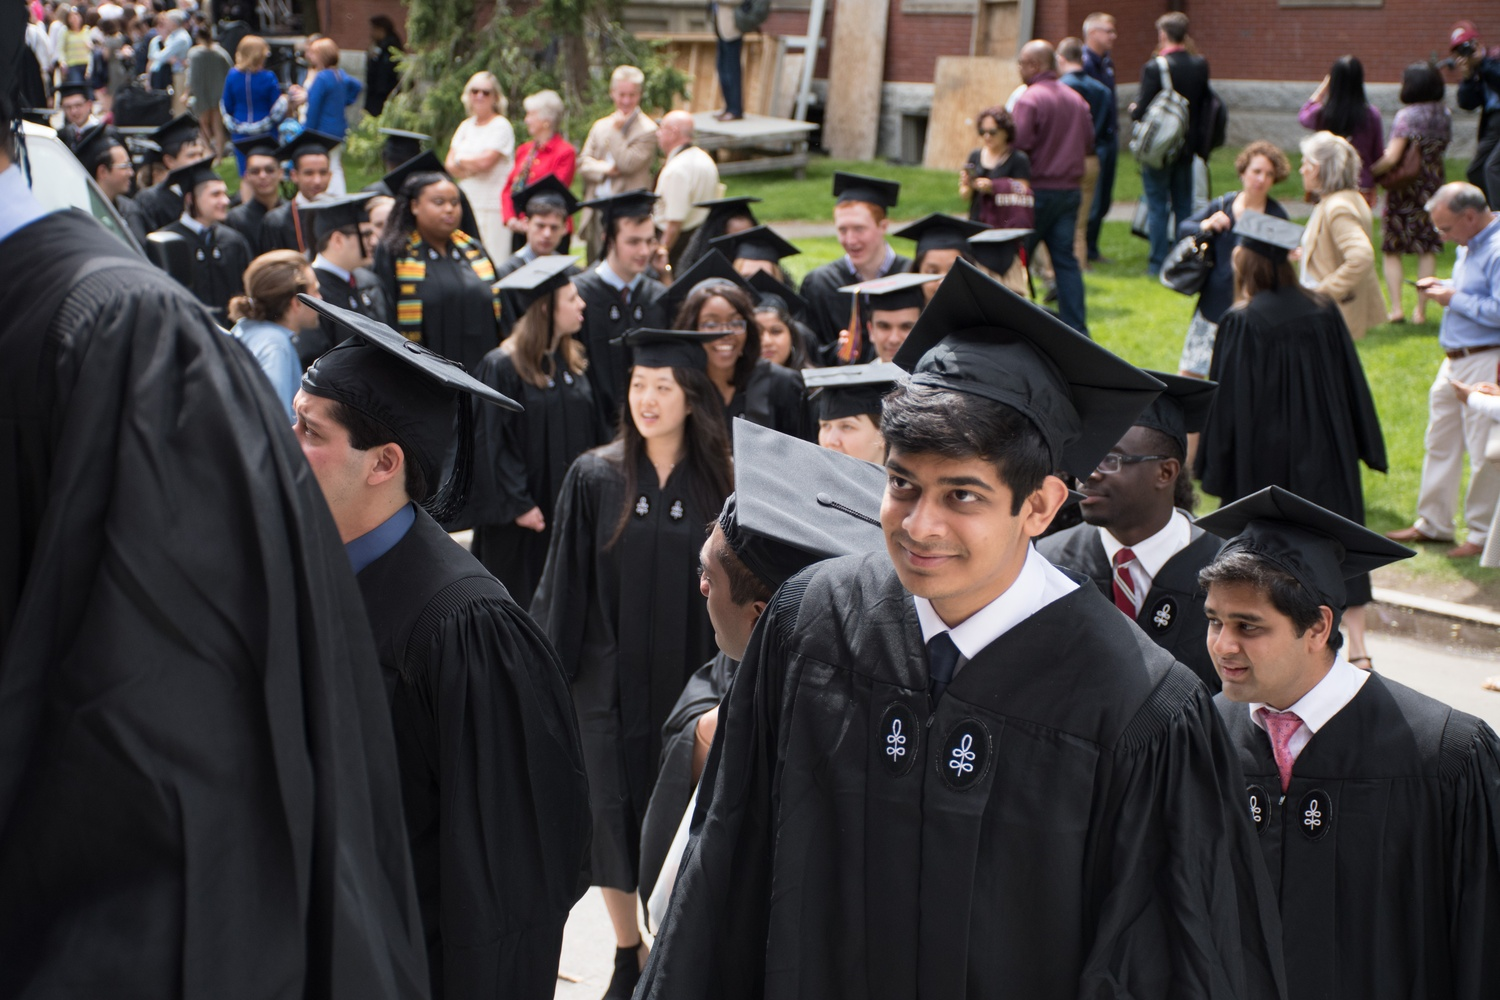 Parijat Lal '17 processes up the steps of Memorial Church for the Baccalaureate Service on Tuesday afternoon.